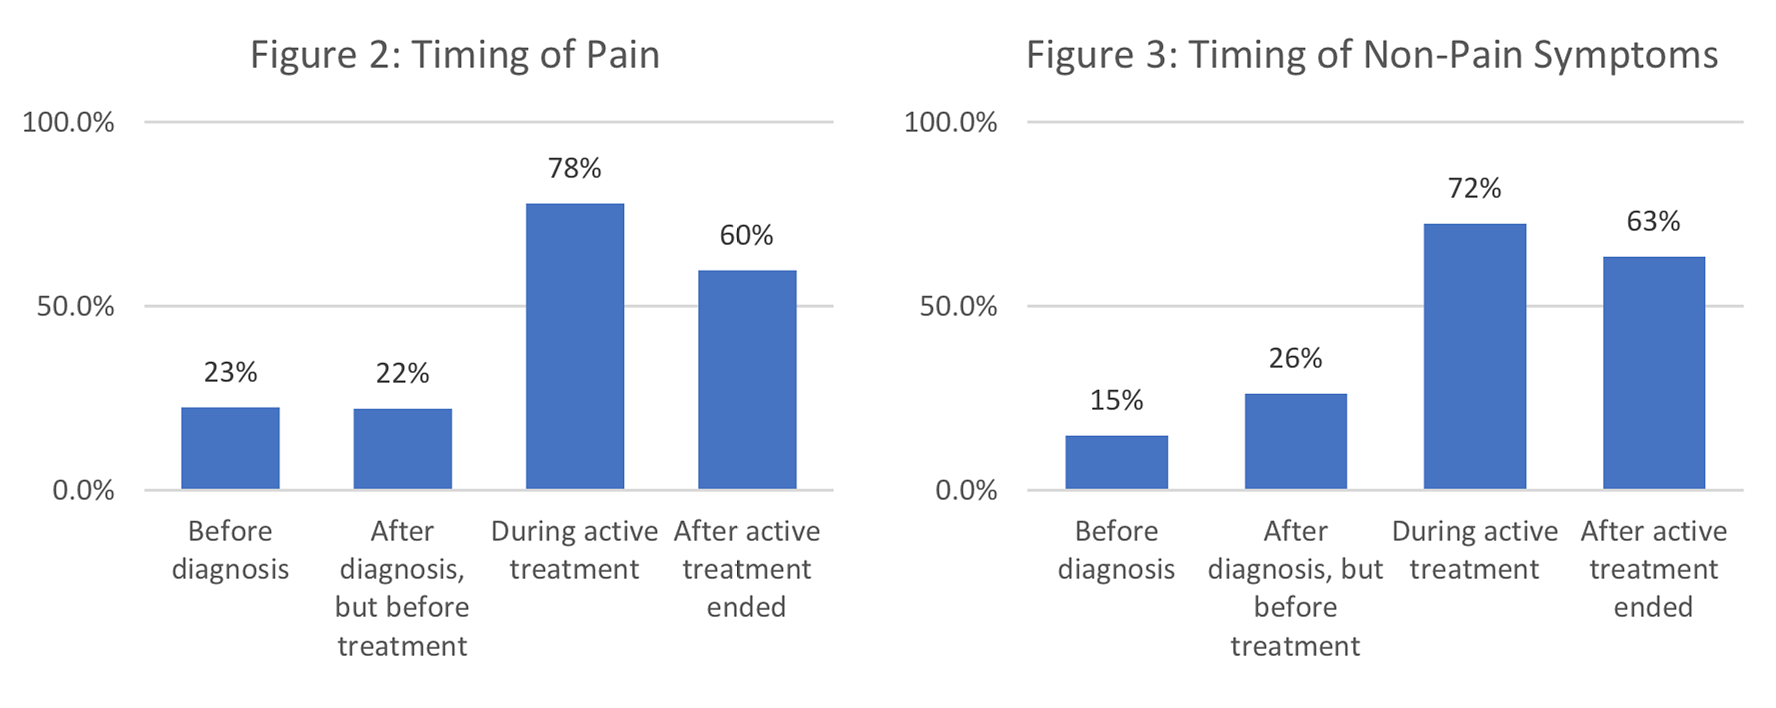 Figure 2: Timing of Pain, Figure 3: Timing of Non-Pain Symptoms